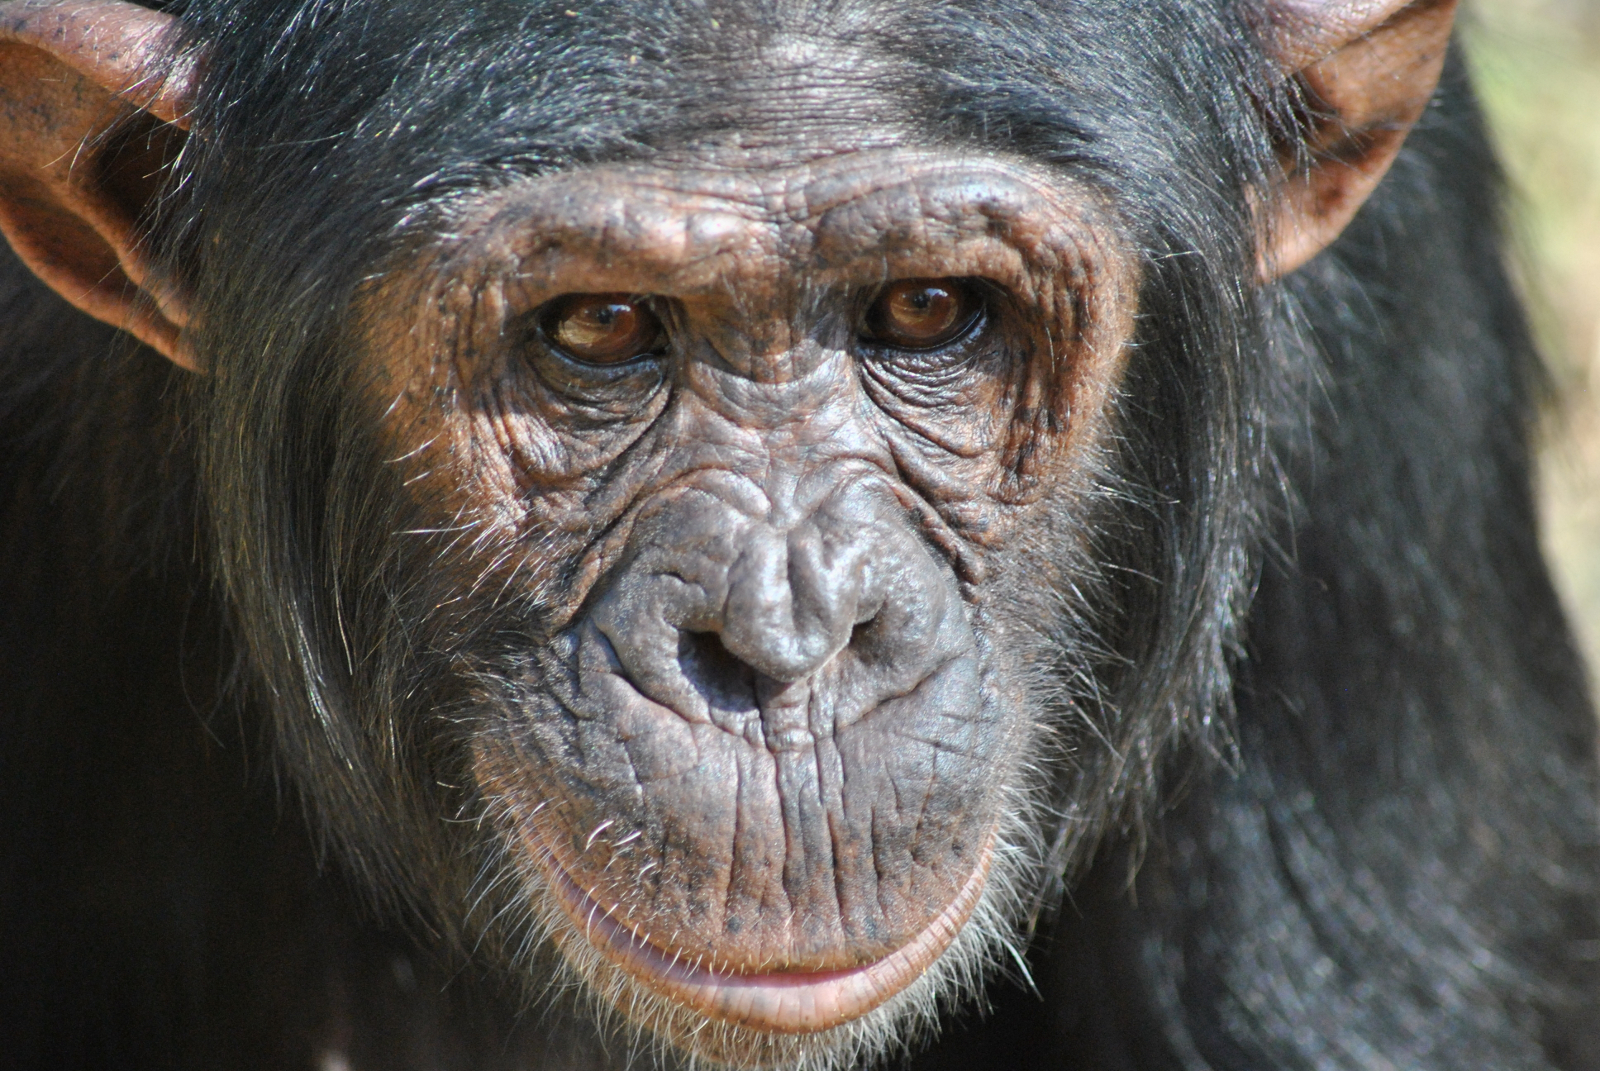 Bridging the Gap Between Animals Rights and Civil Rights: Hope We're Making Progress